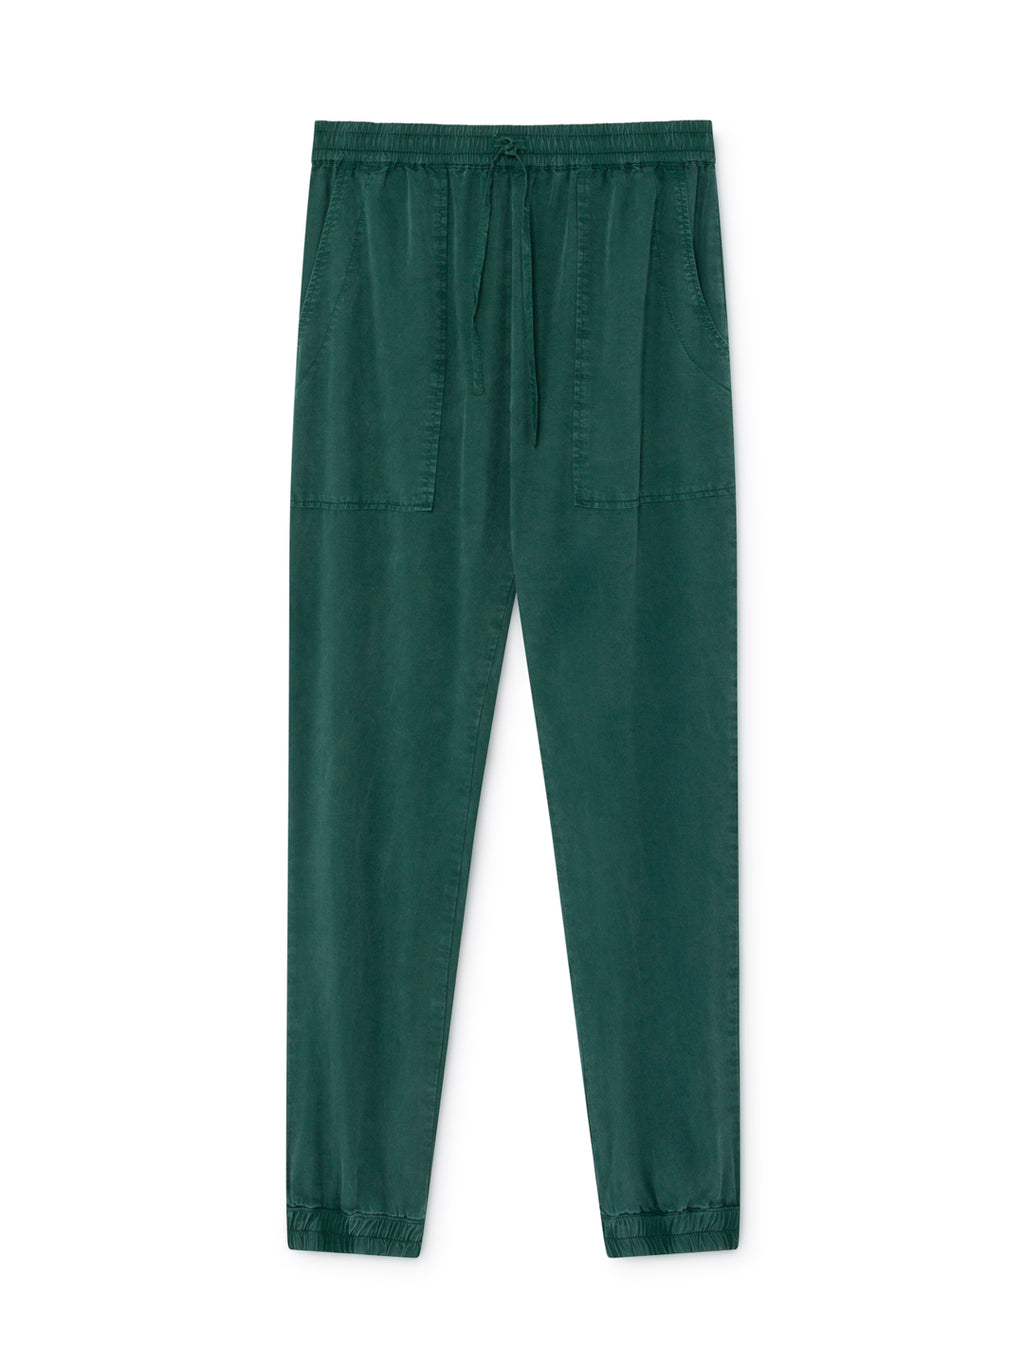 TWOTHIRDS Womens Pants: Kaafu - Dark Green front